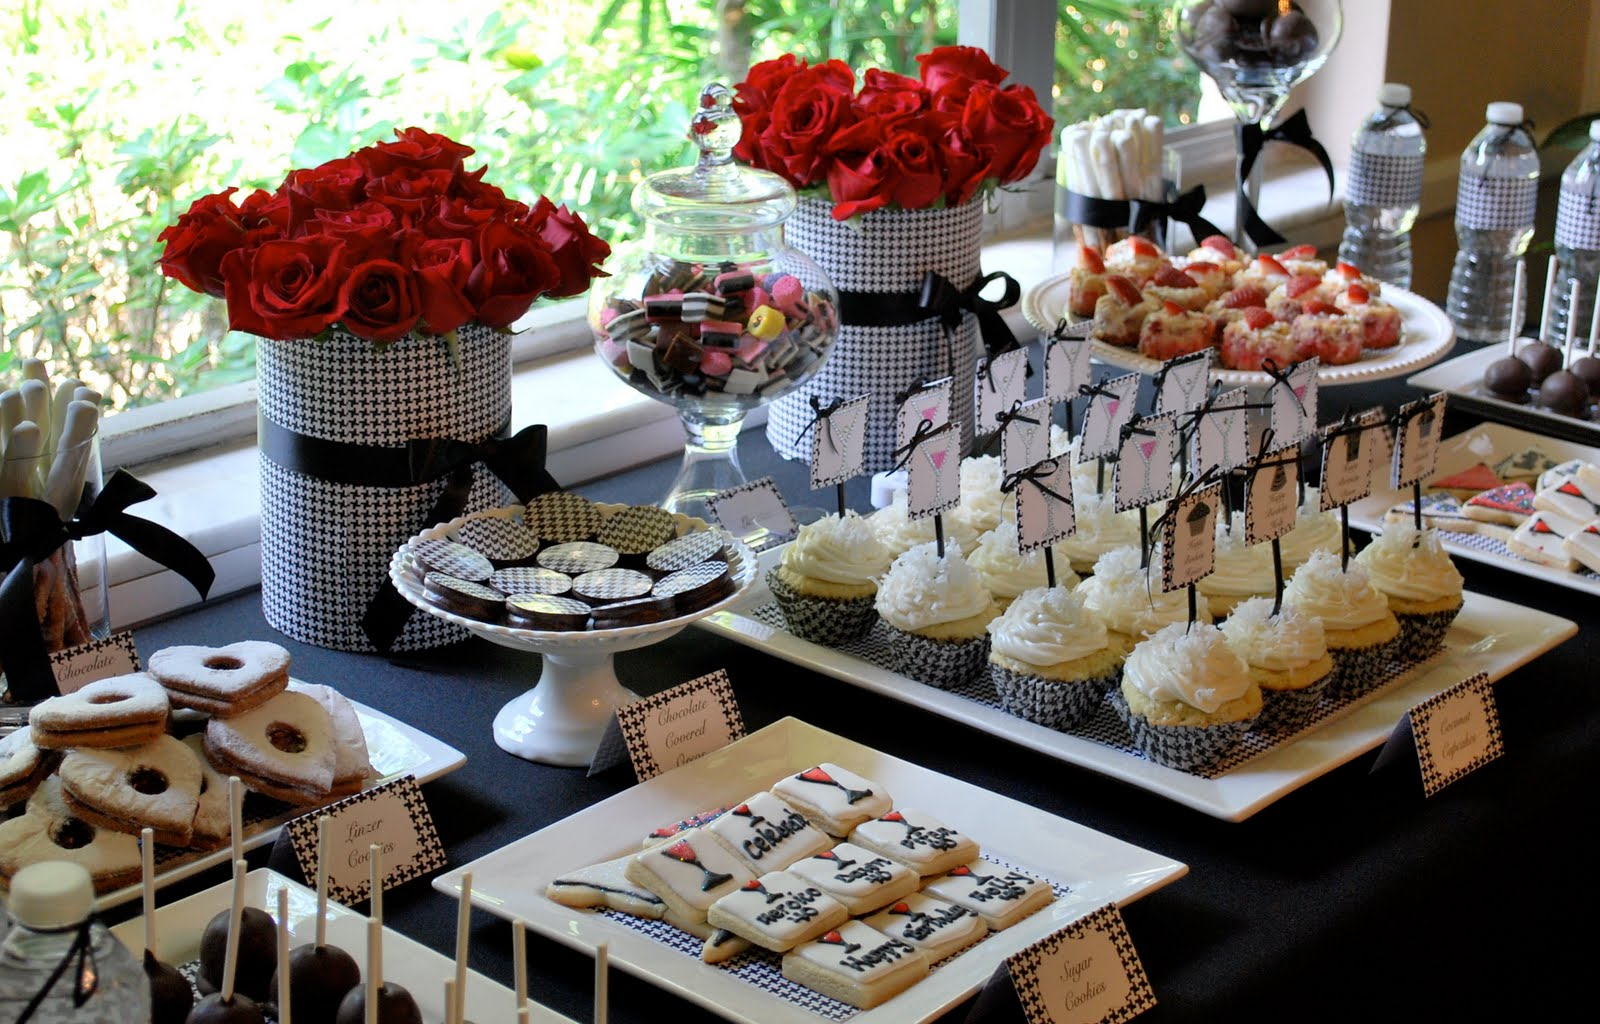 Buffet Party Dessert Buffet Miami Wedding Dessert Sweets Table Quinces